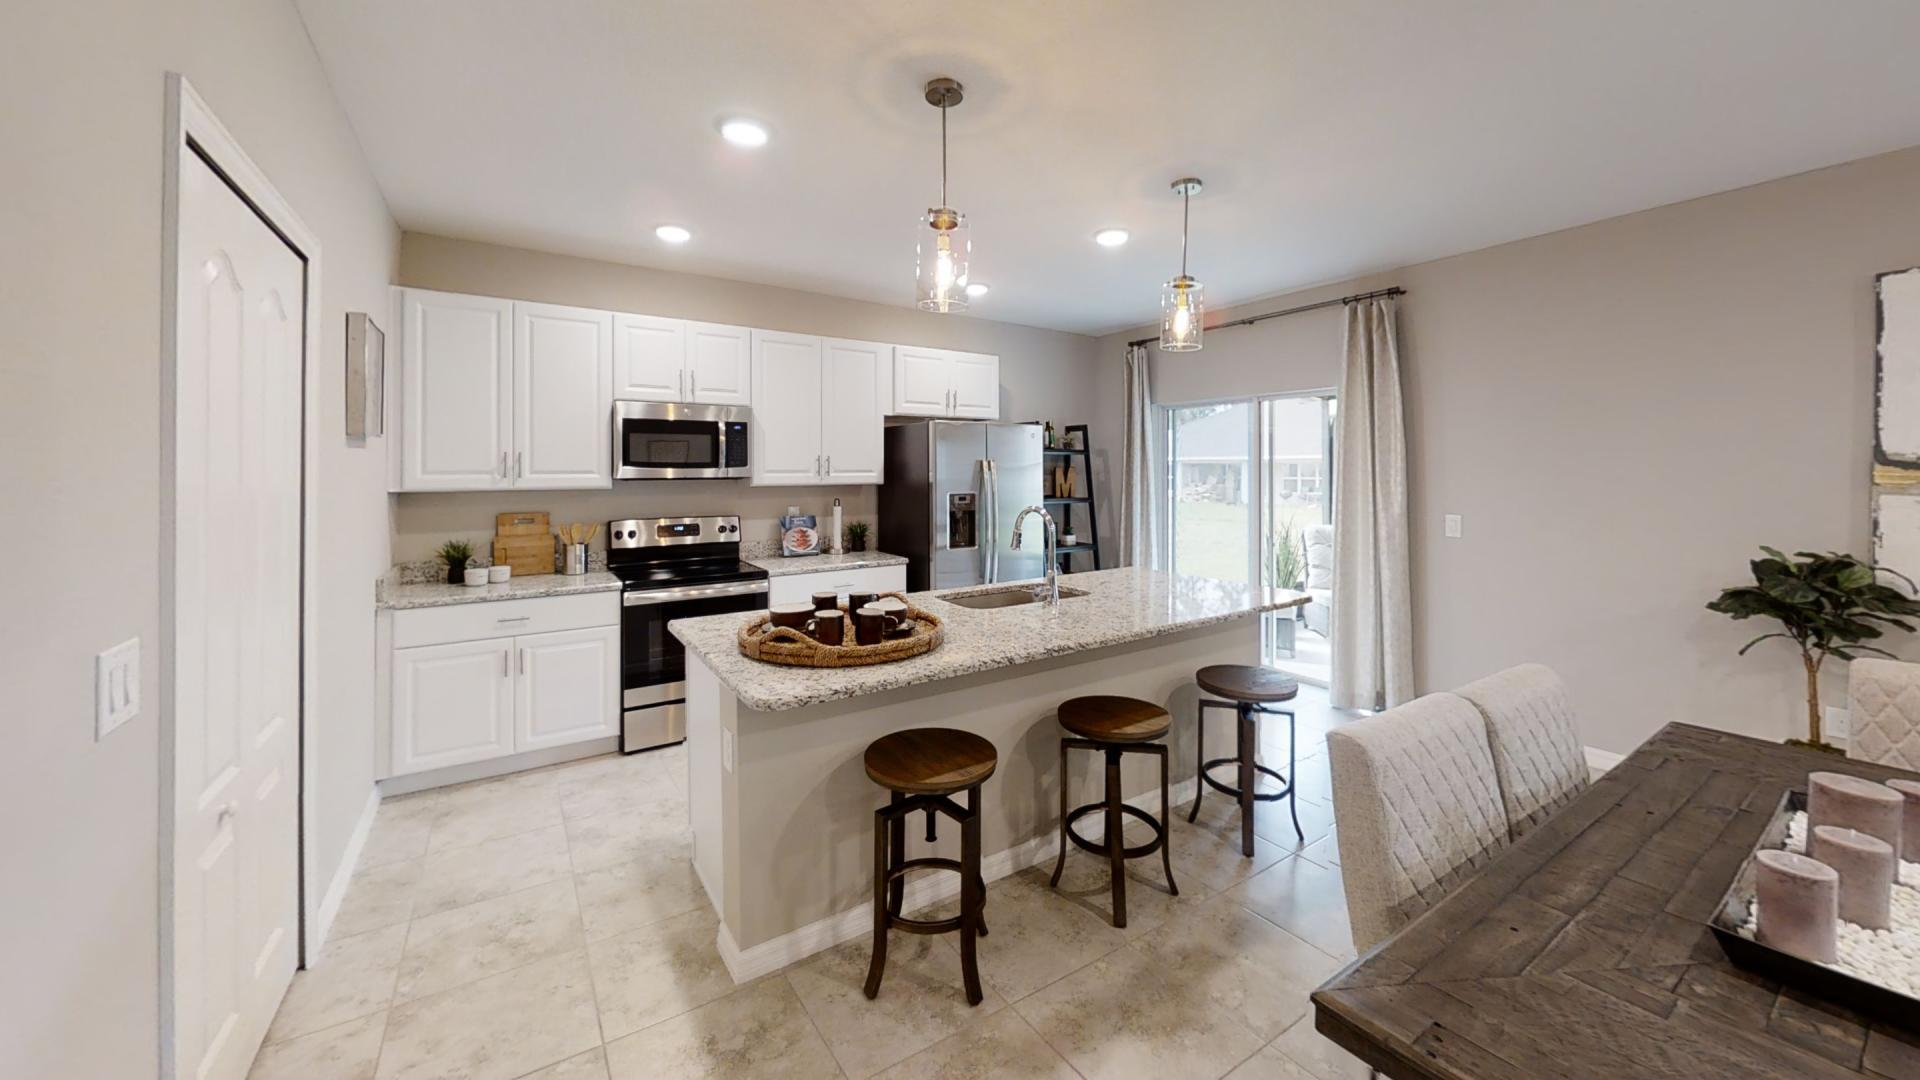 Kitchen featured in the Mesquite By Maronda Homes in Indian River County, FL